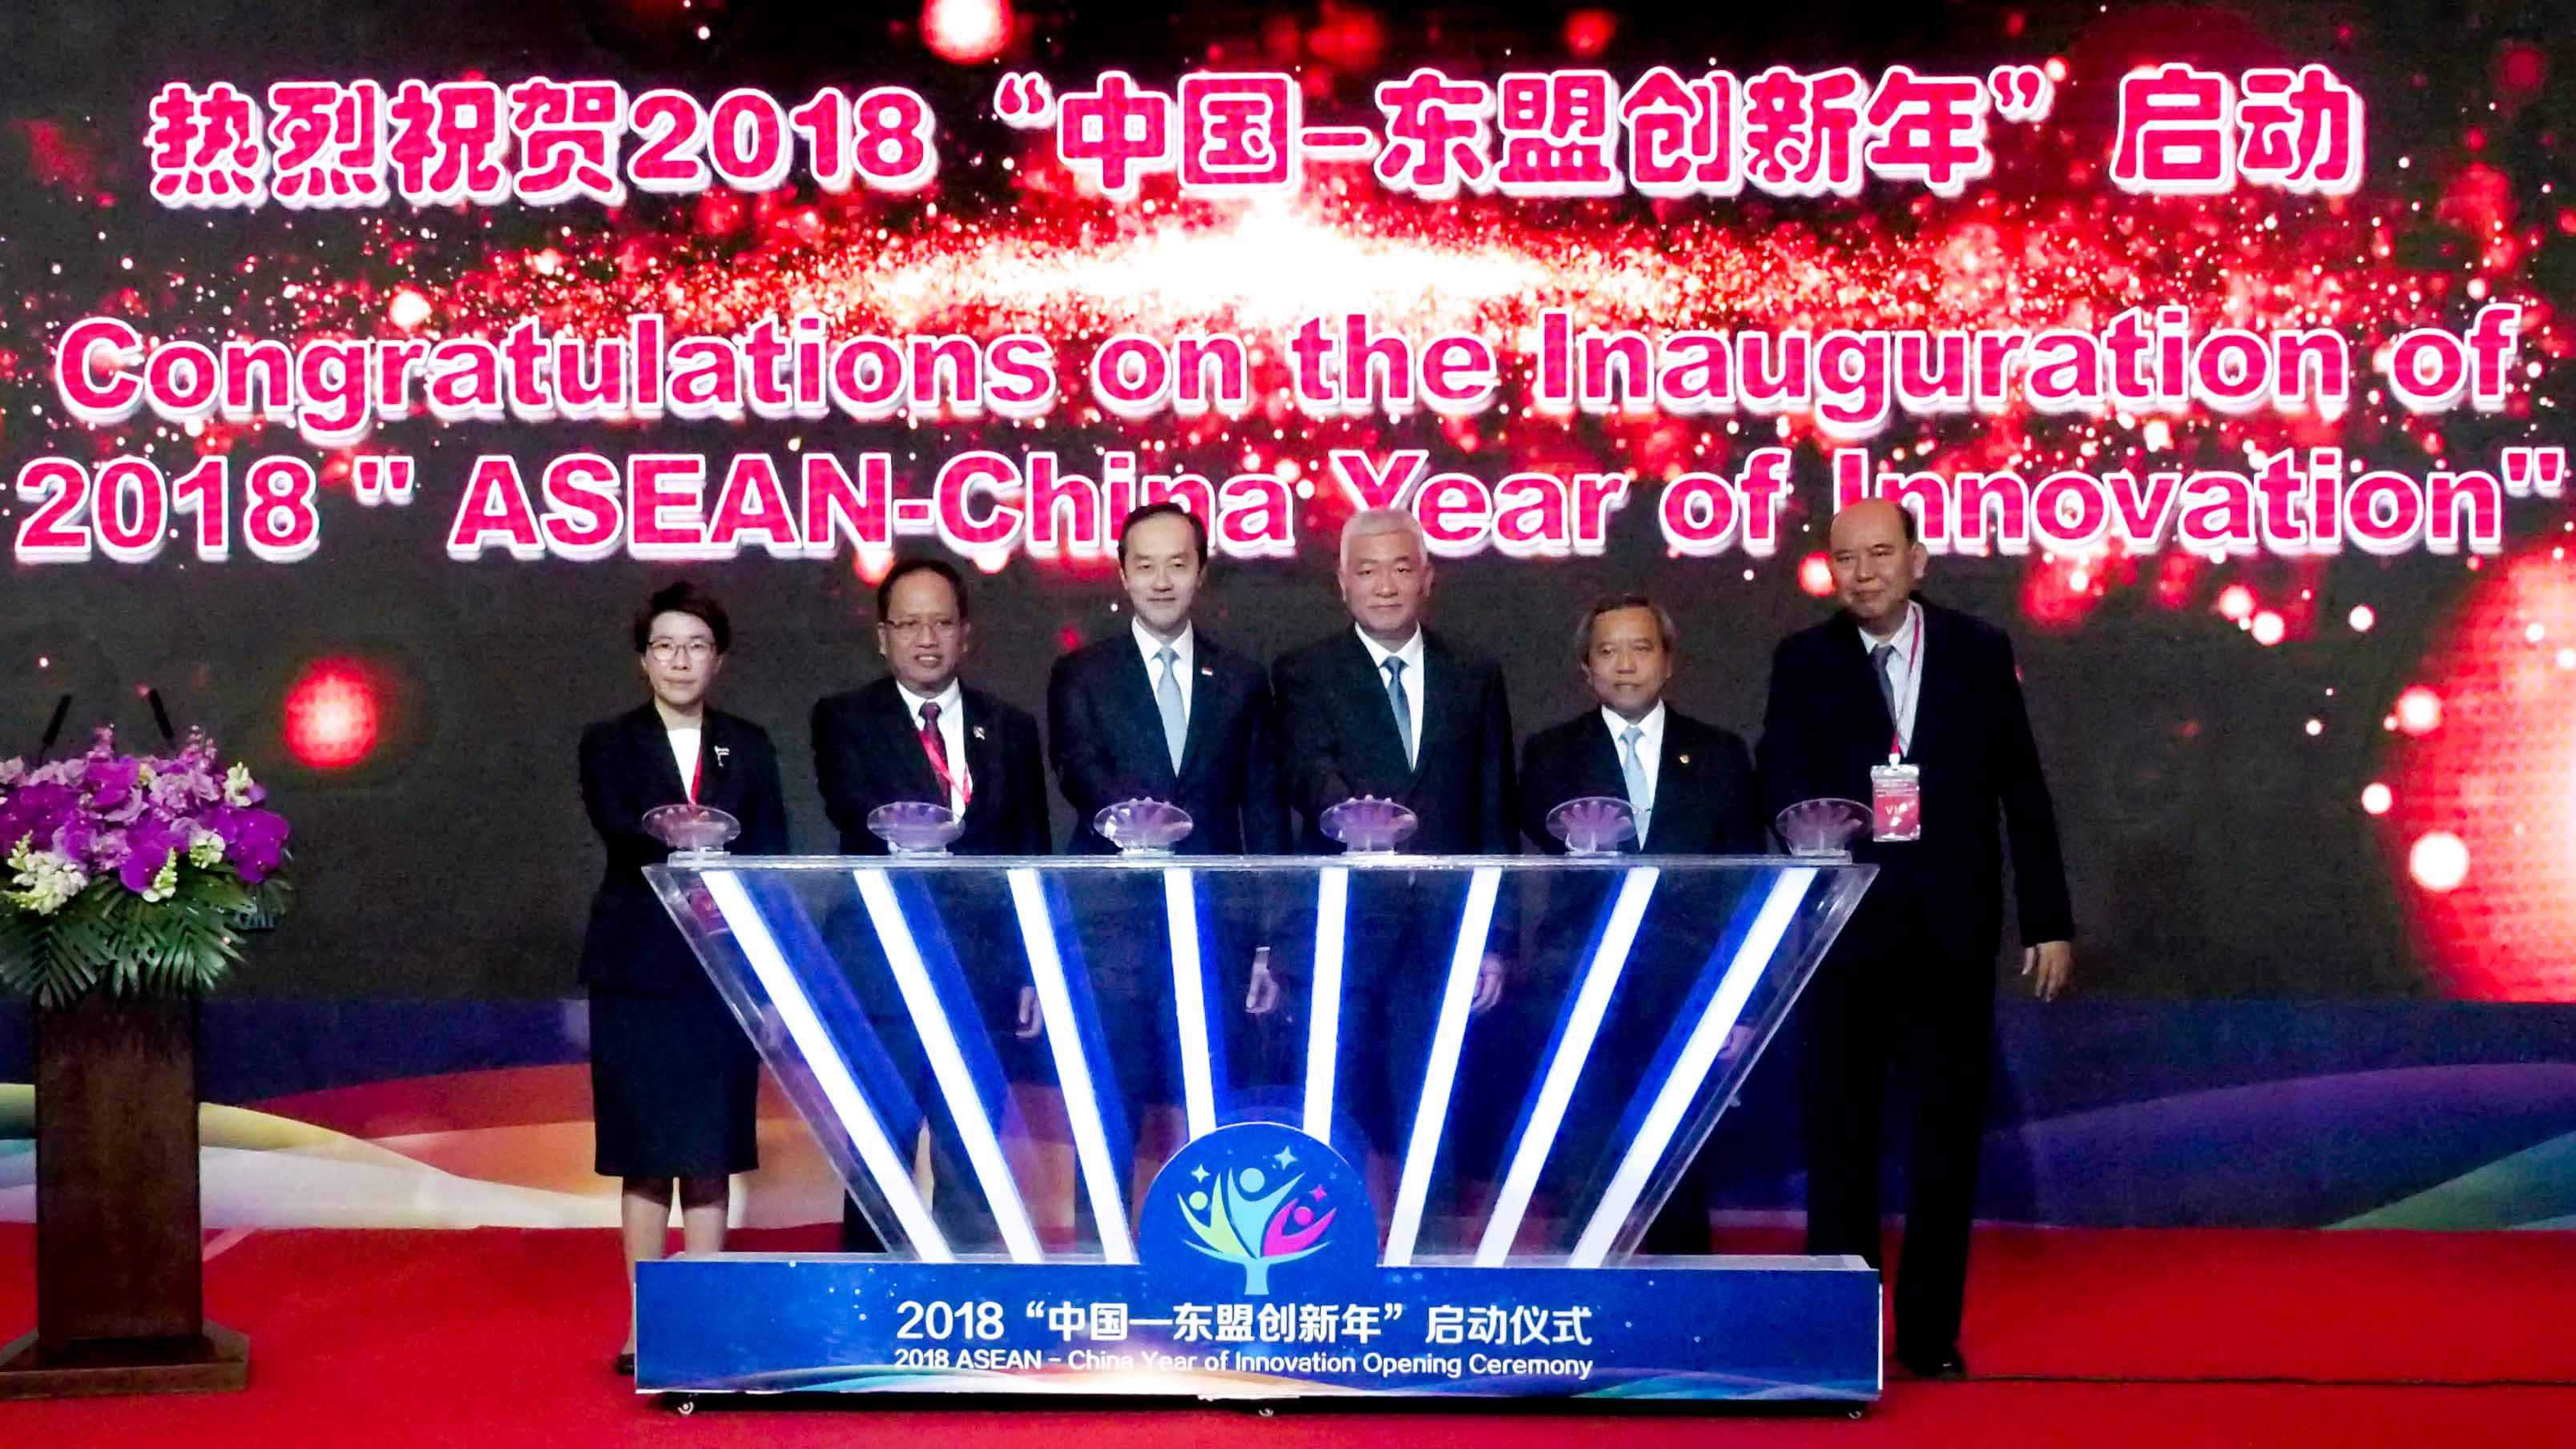 Chinese premier congratulates ASEAN-China Year of Innovation